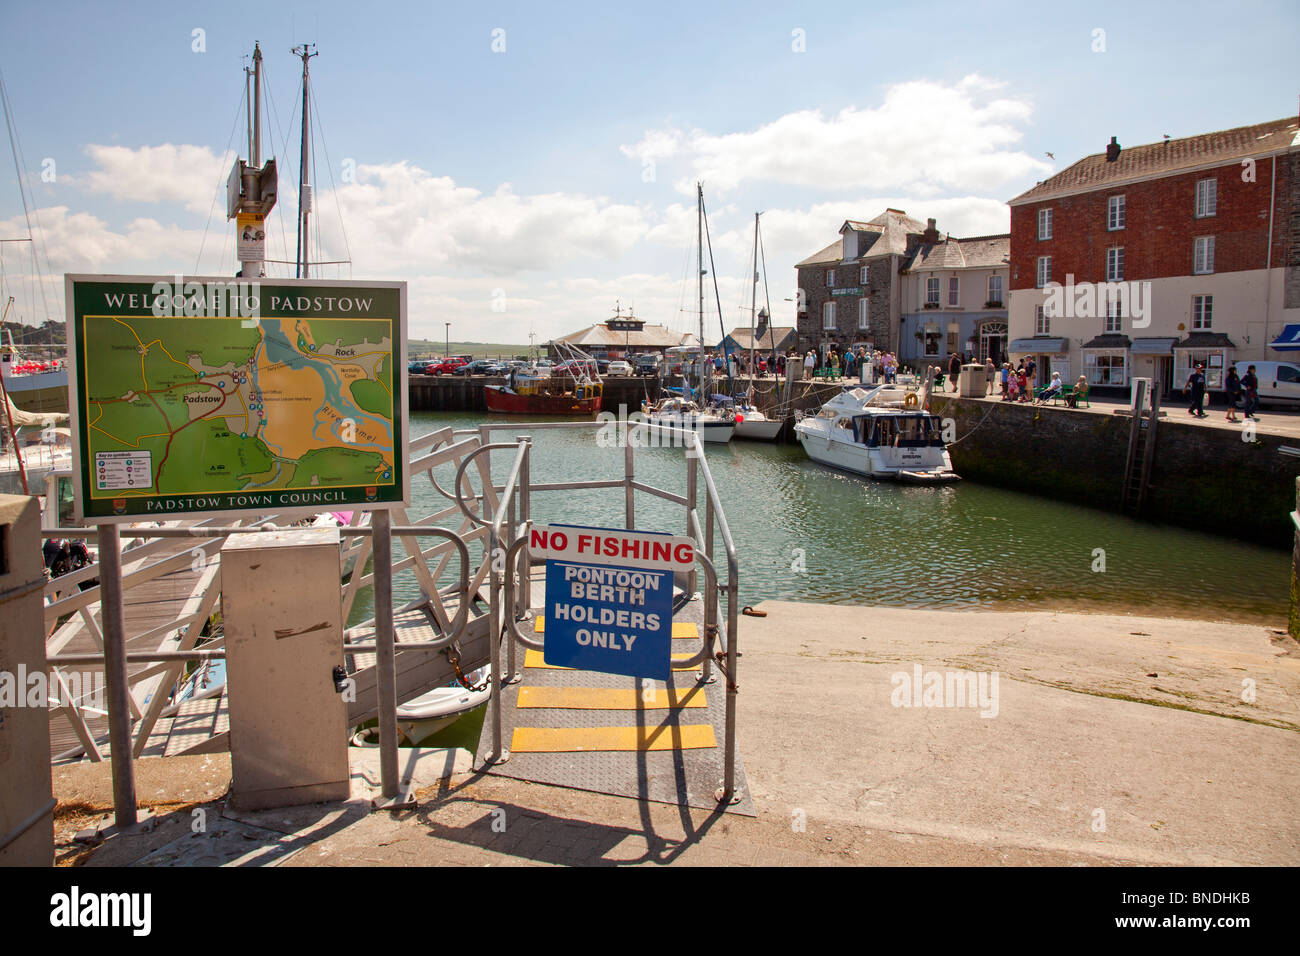 The small, town, village of Padstow in Cornwall, England made famous by Rick Stein the infamous chef - Stock Image